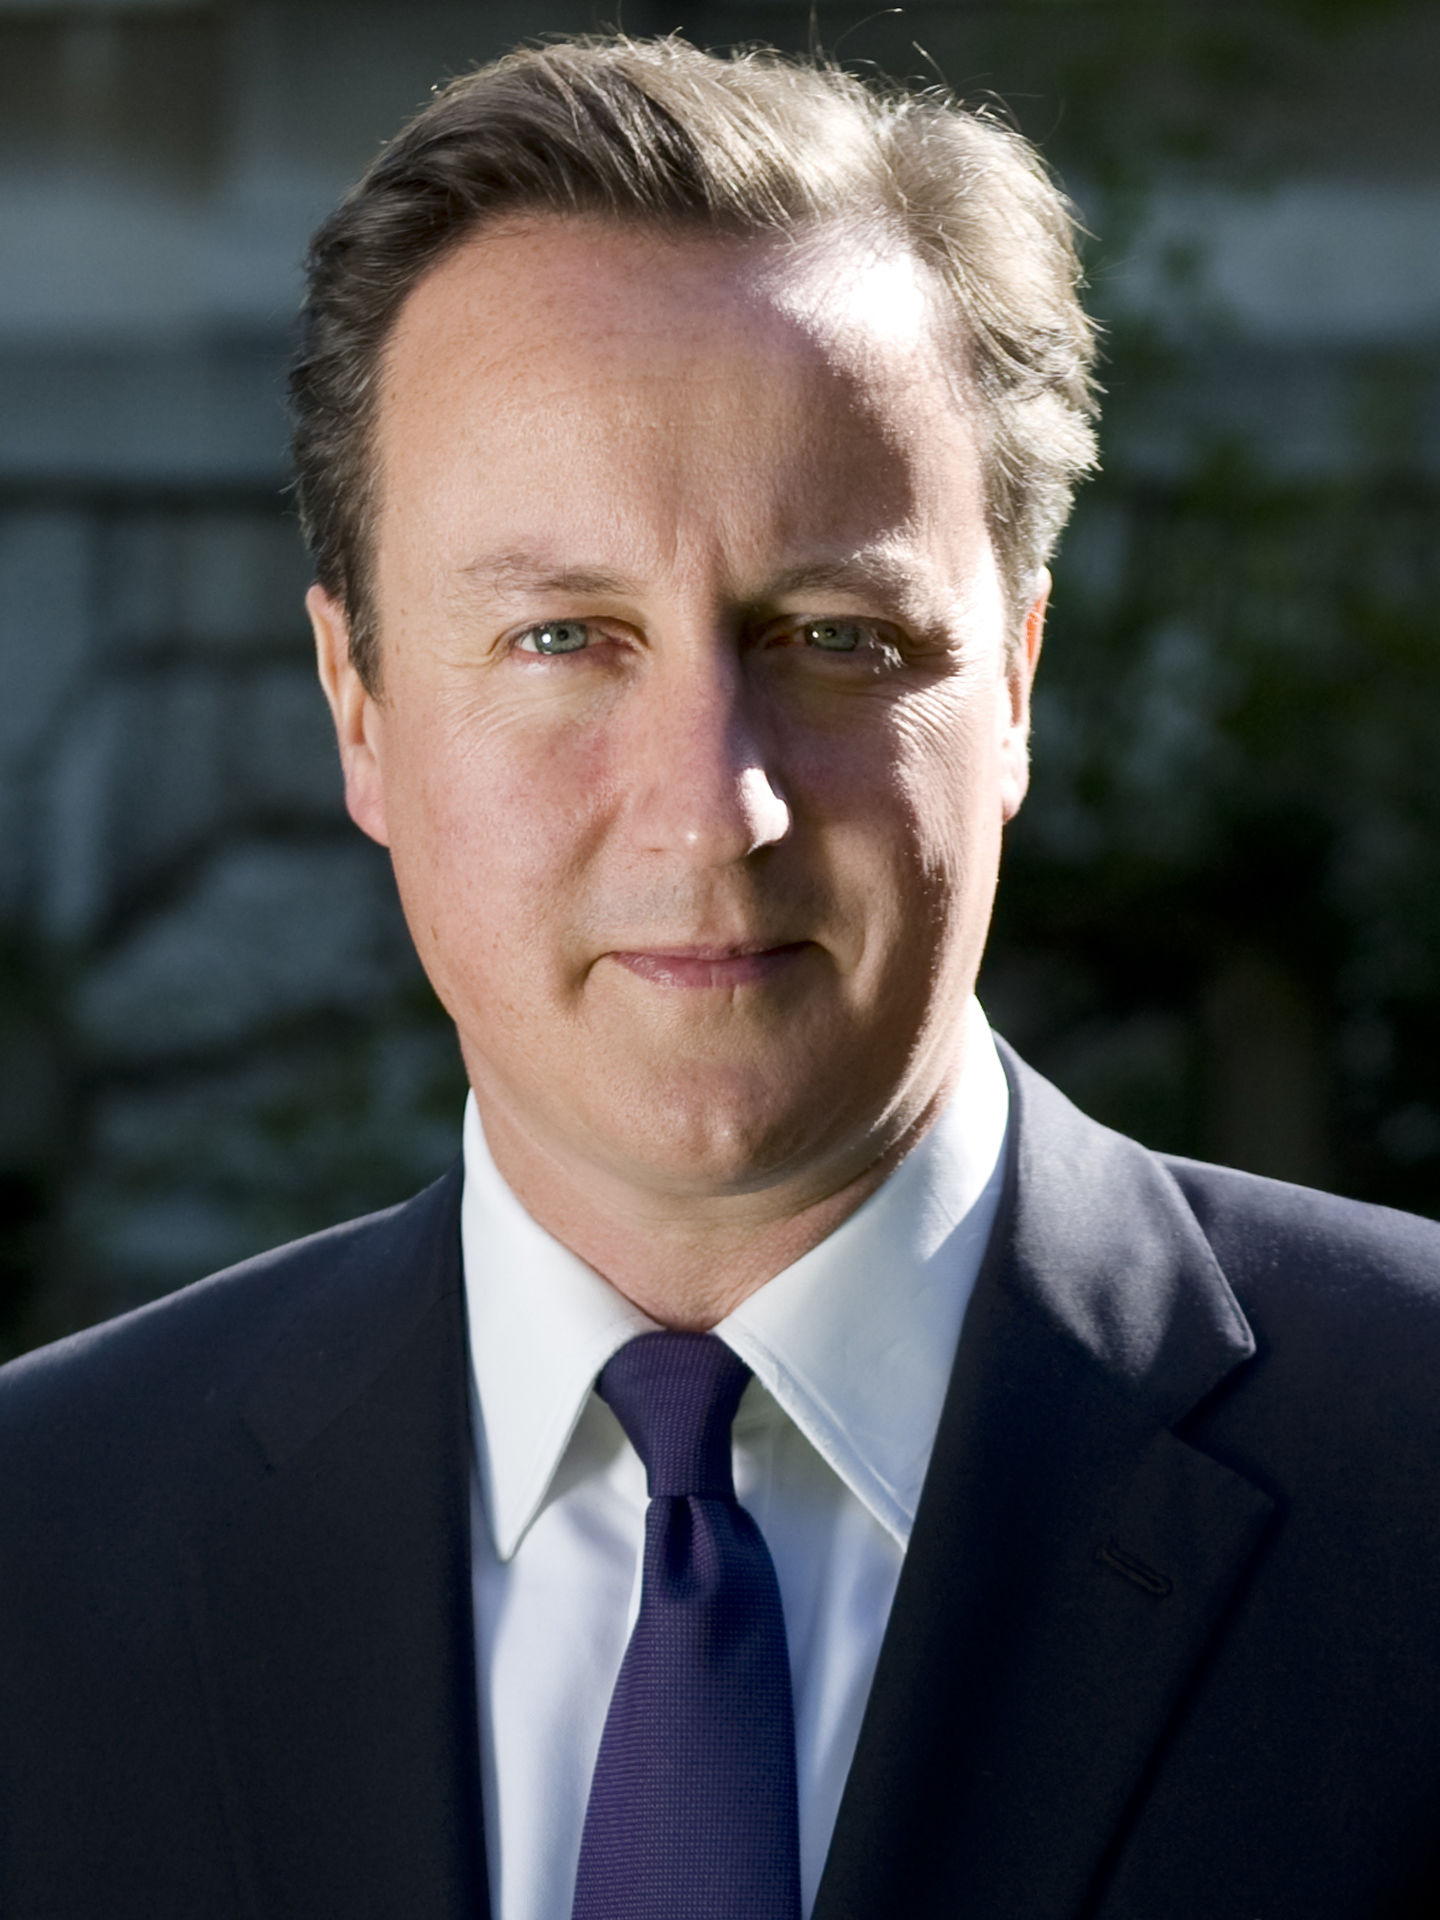 Photo of David Cameron: Prime Minister of the United Kingdom, First Lord of the Treasury, Minister for the Civil Service and Leader of the Conservative Party